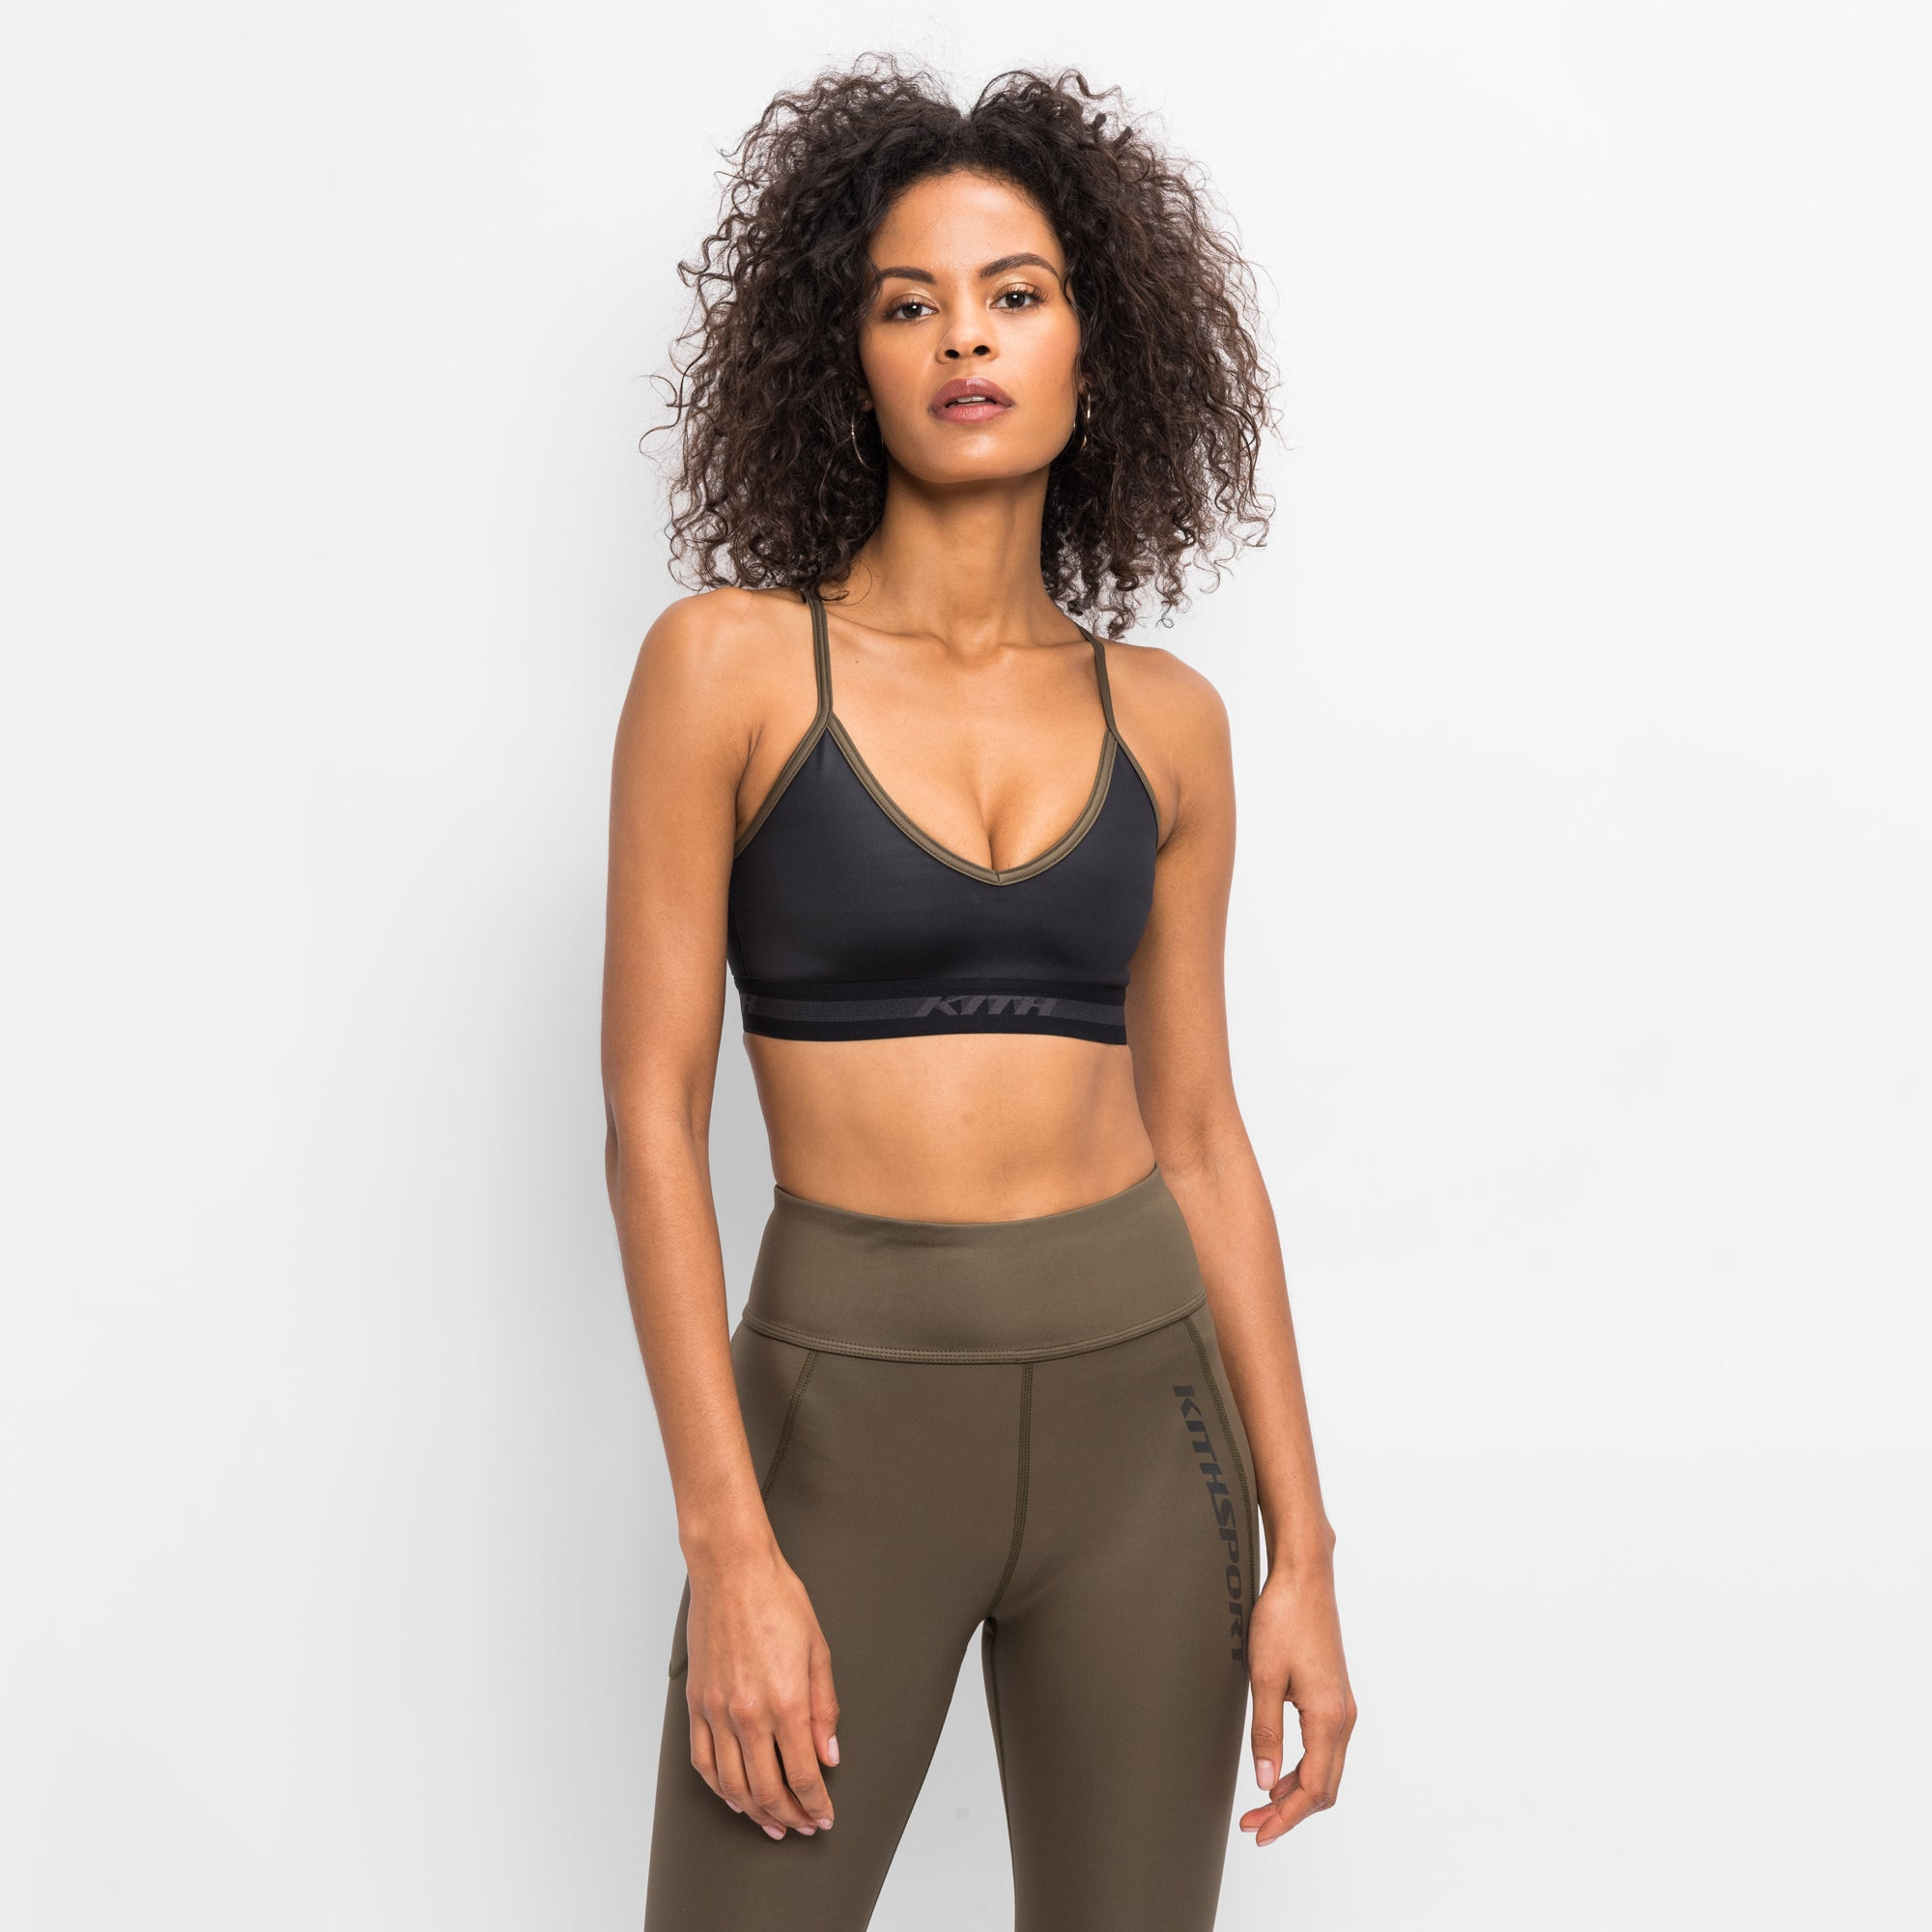 Kith Women Linda Shine Bra - Black / Khaki